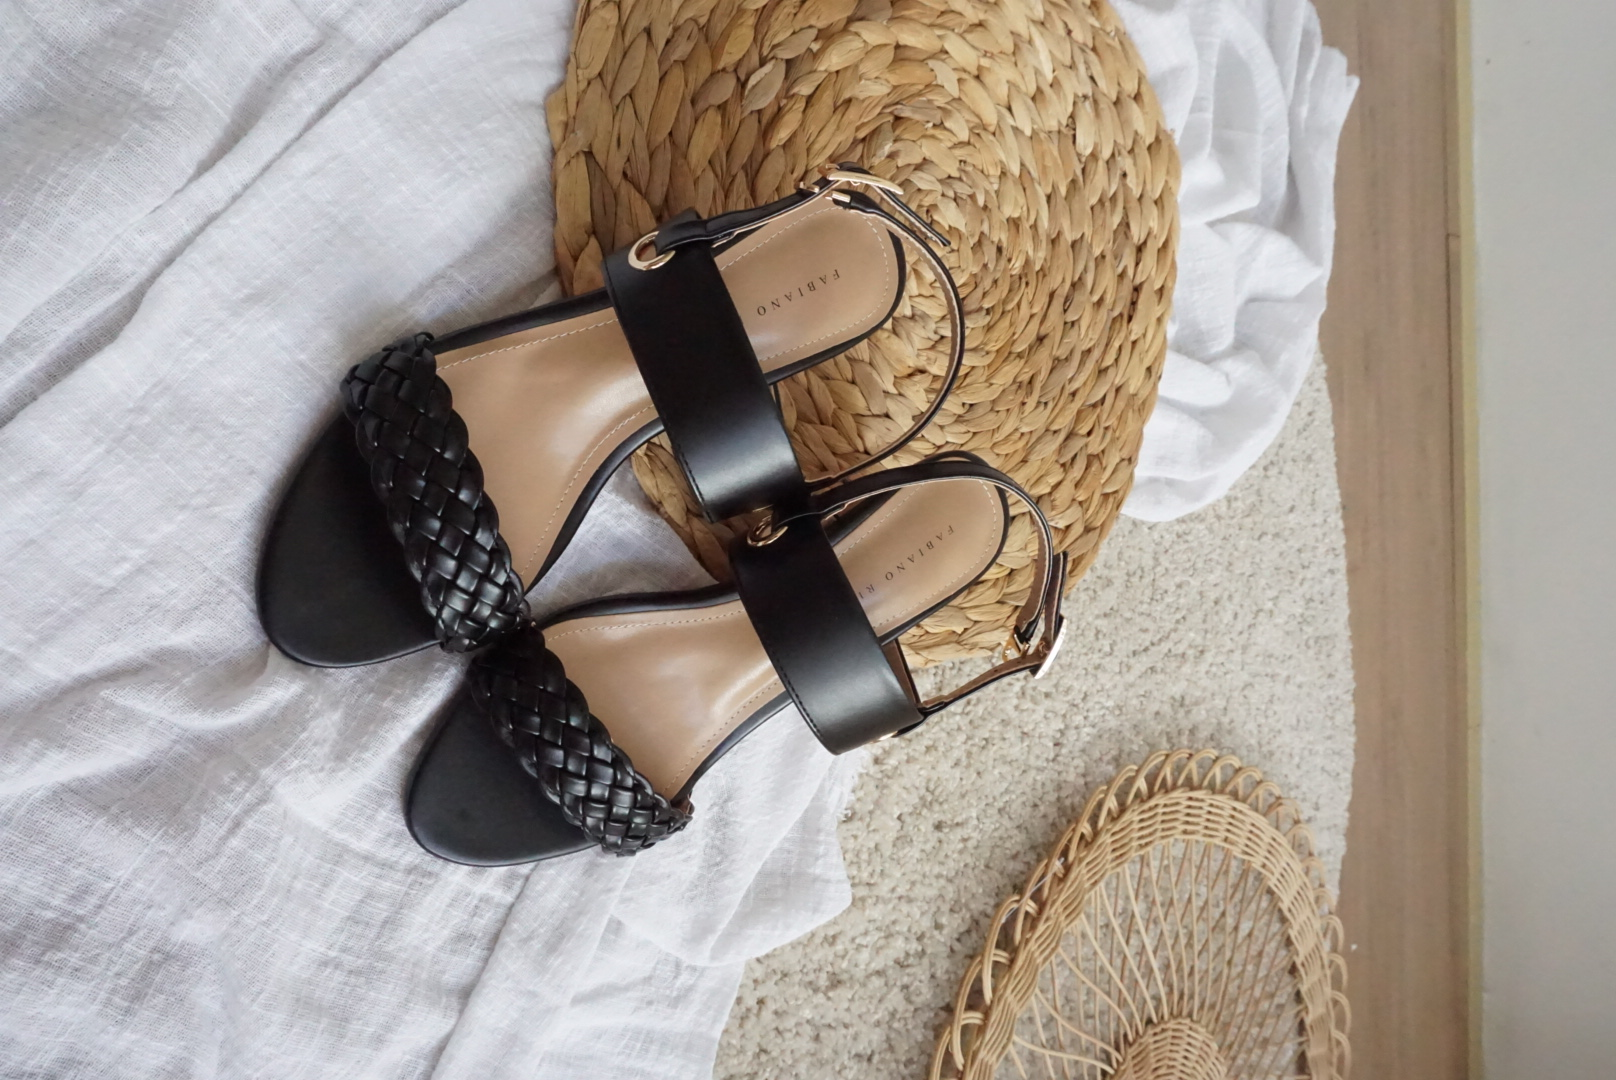 BRAIDED SUMMER HEELS #26457